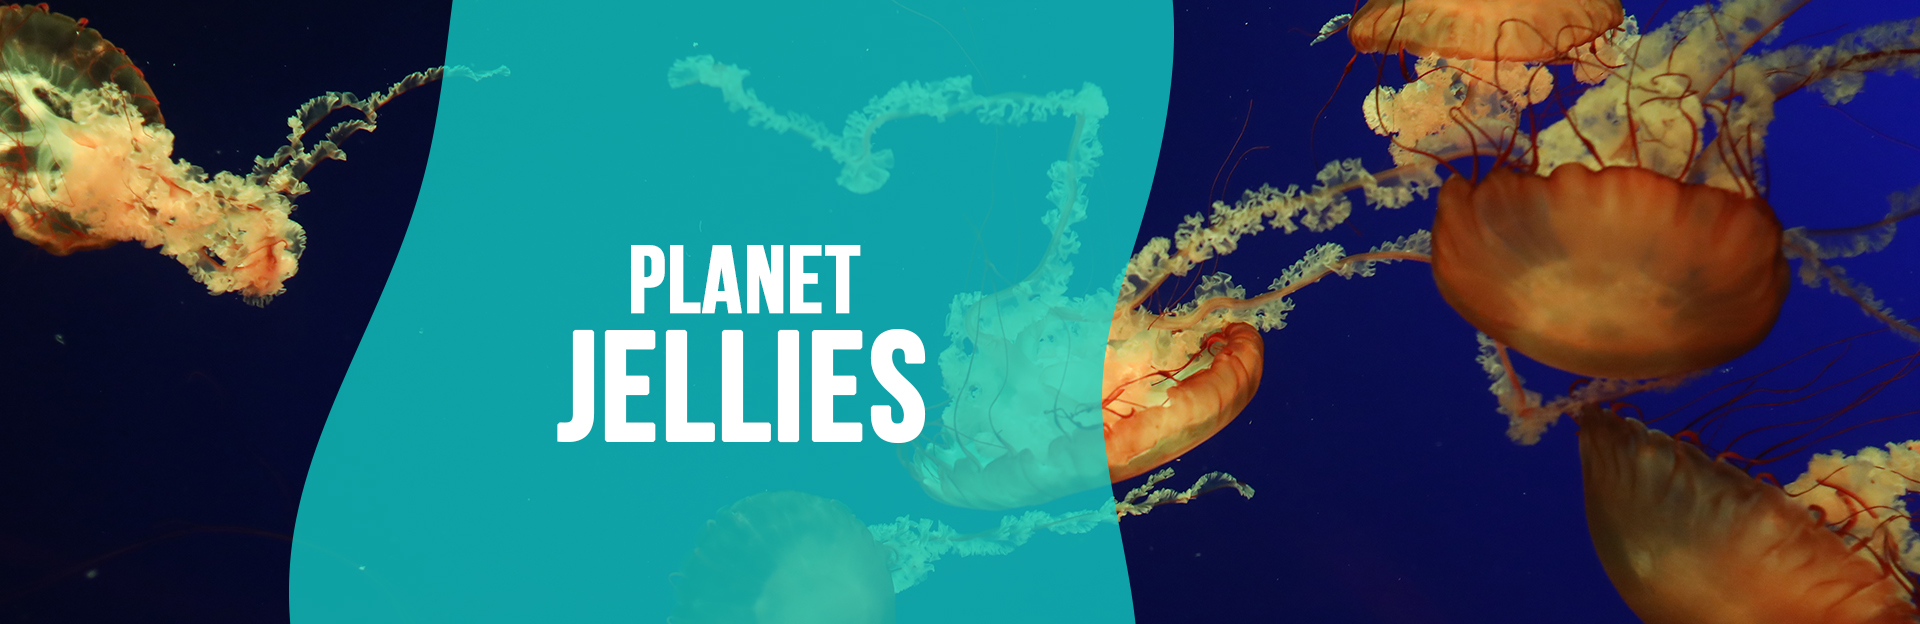 Header image for Planet Jellies page